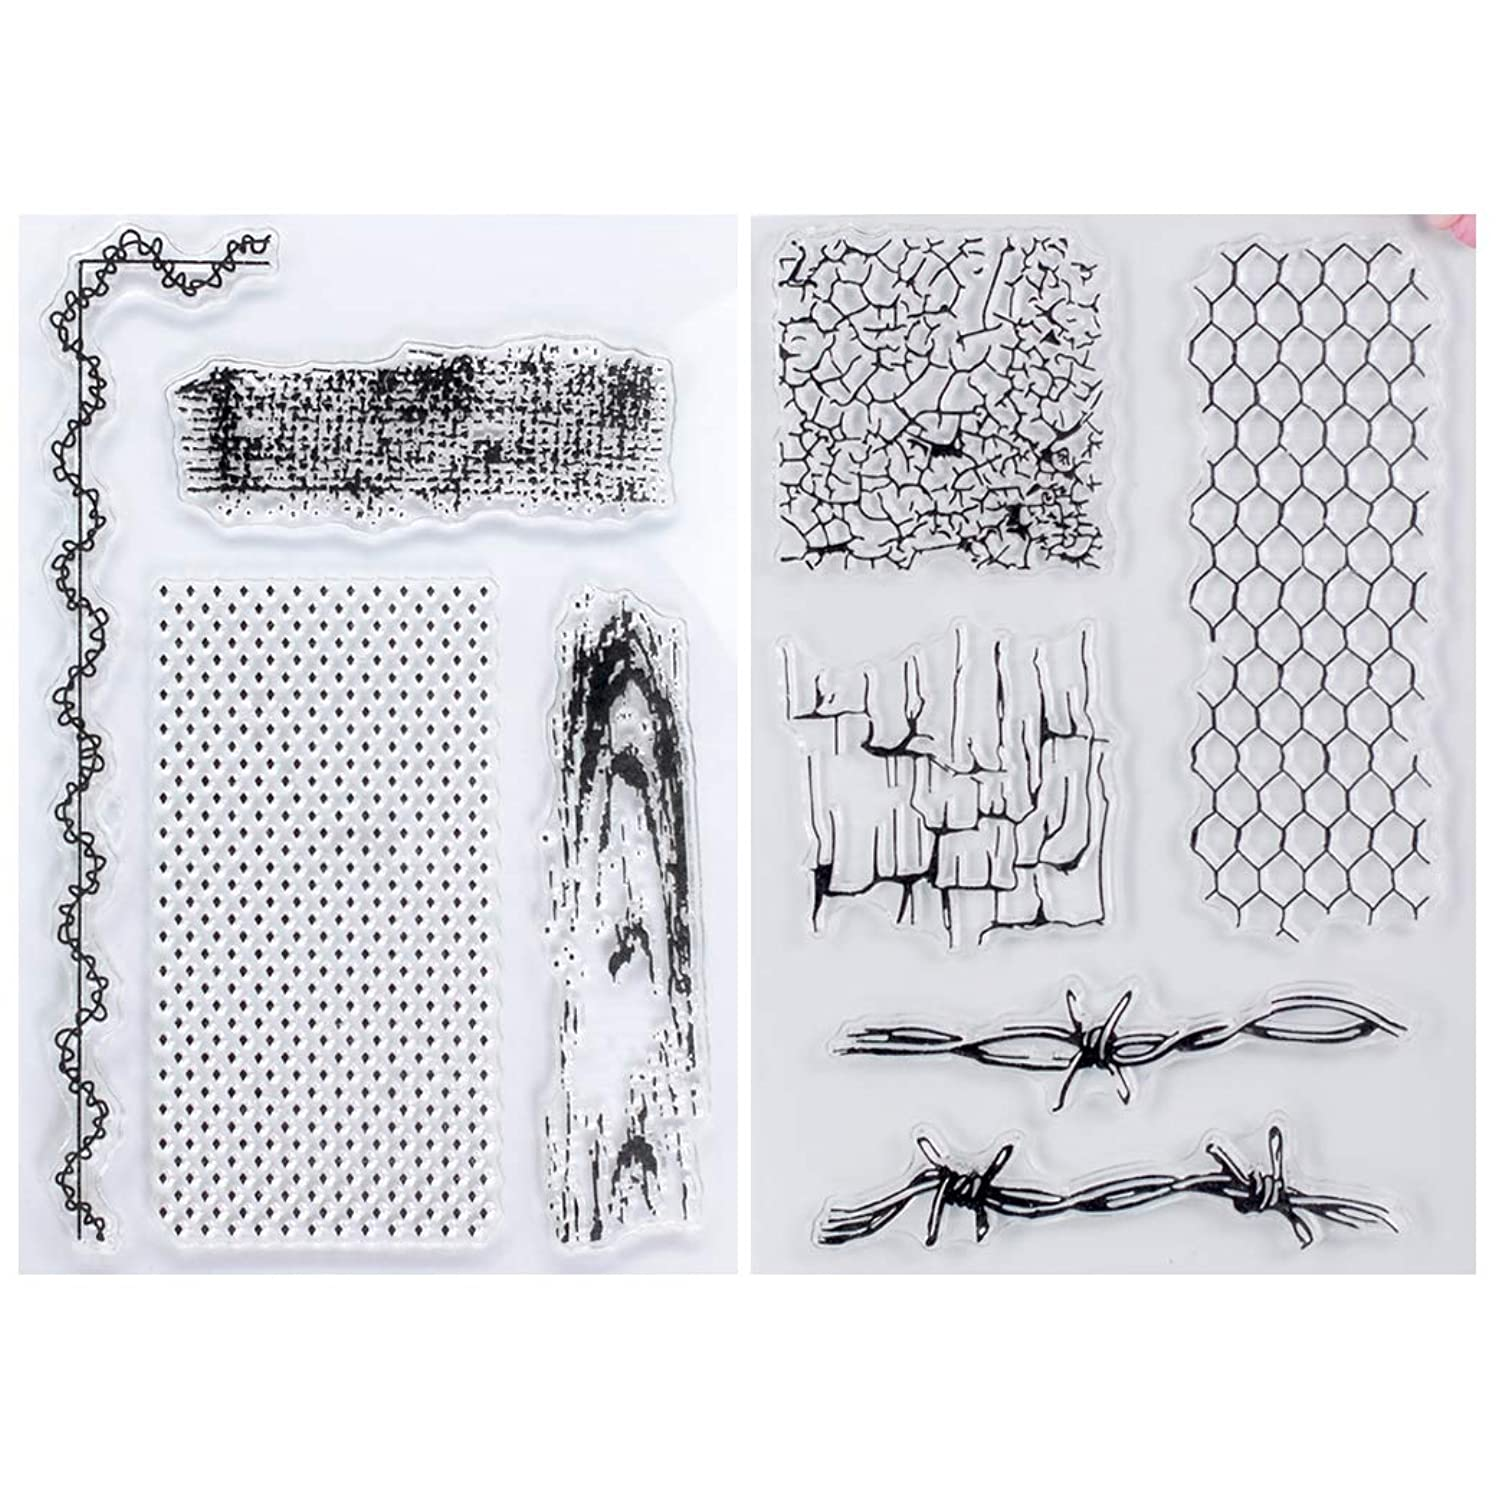 Kwan Crafts 2 Sheets Different Style Wood Grain Crack Grid Background Clear Stamps for Card Making Decoration and DIY Scrapbooking